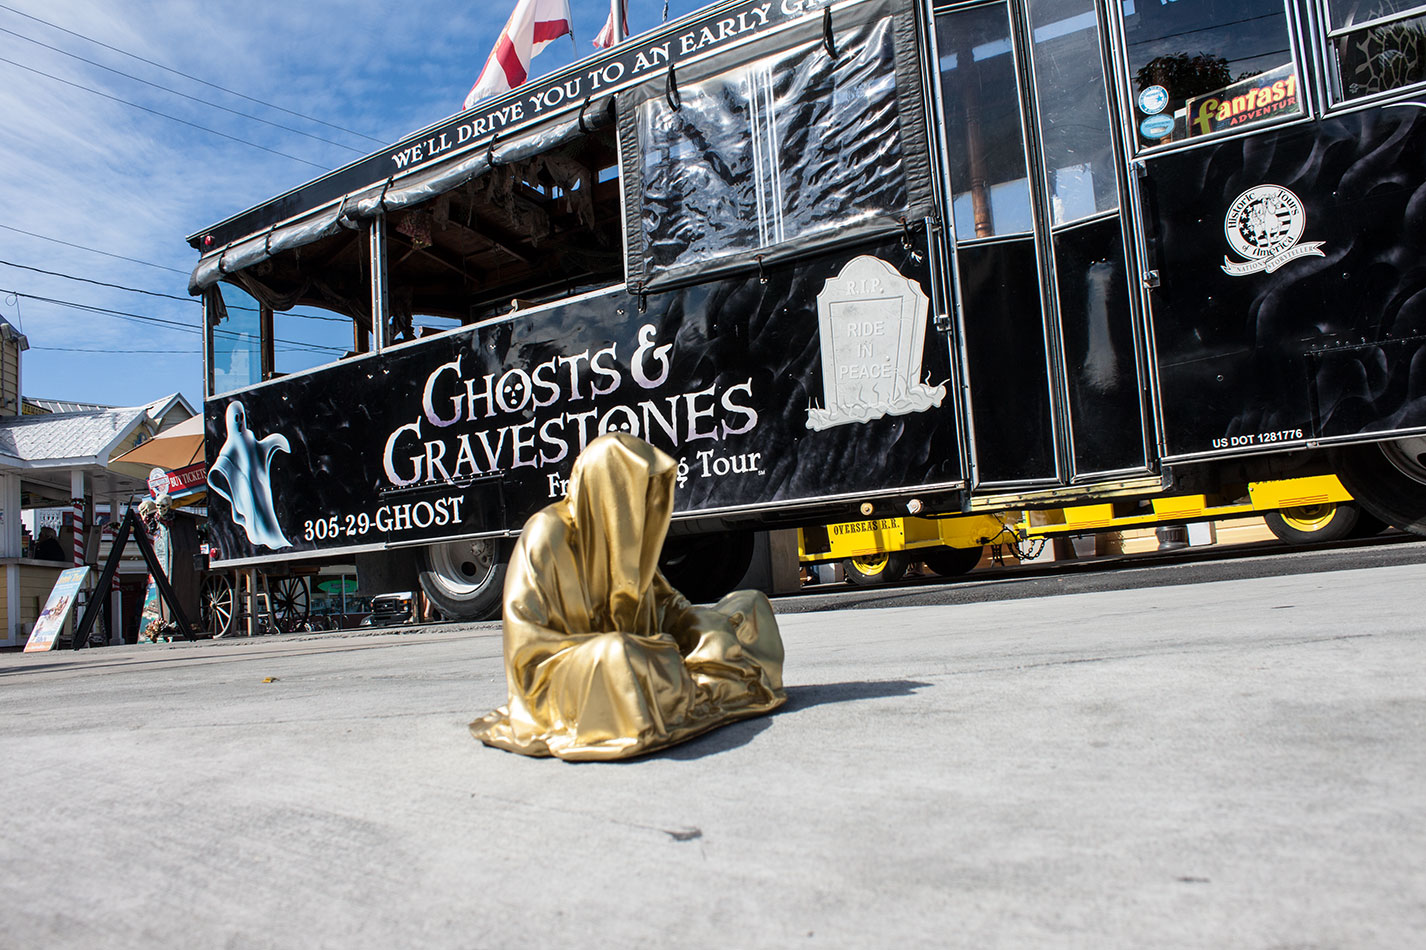 public-art-basel-miami-beach-fair-usa-florida-guardians-of-time-manfred-kili-kielnhofer-contemporary-fine-art-modern-arts-design-antiques-sculpture-6772